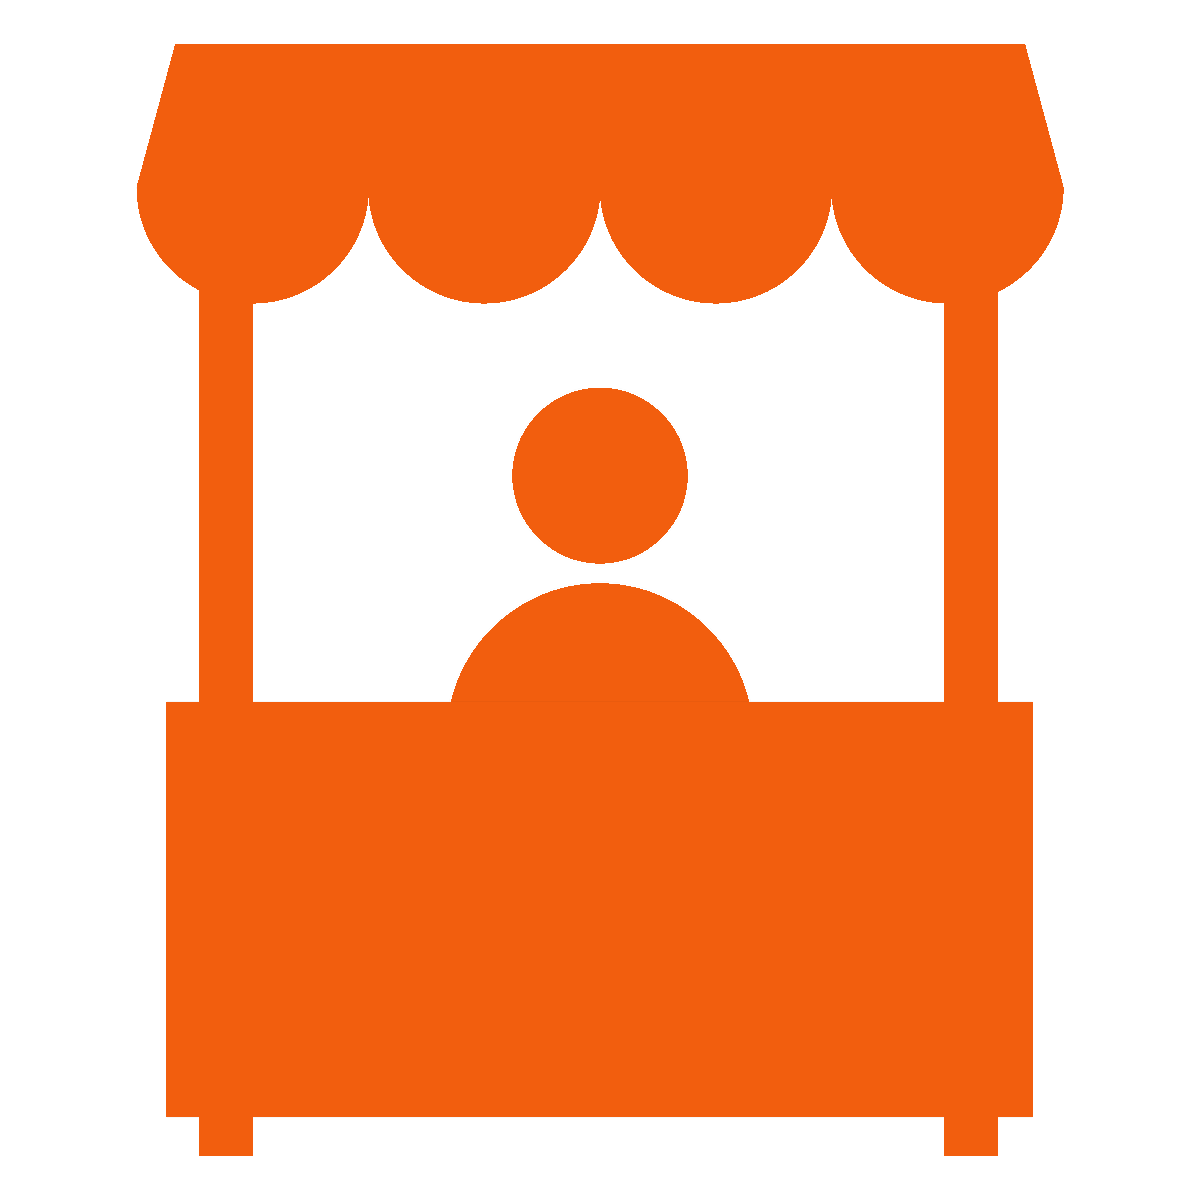 Exhibition Booth Clipart : Booth icon pictures to pin on pinterest thepinsta